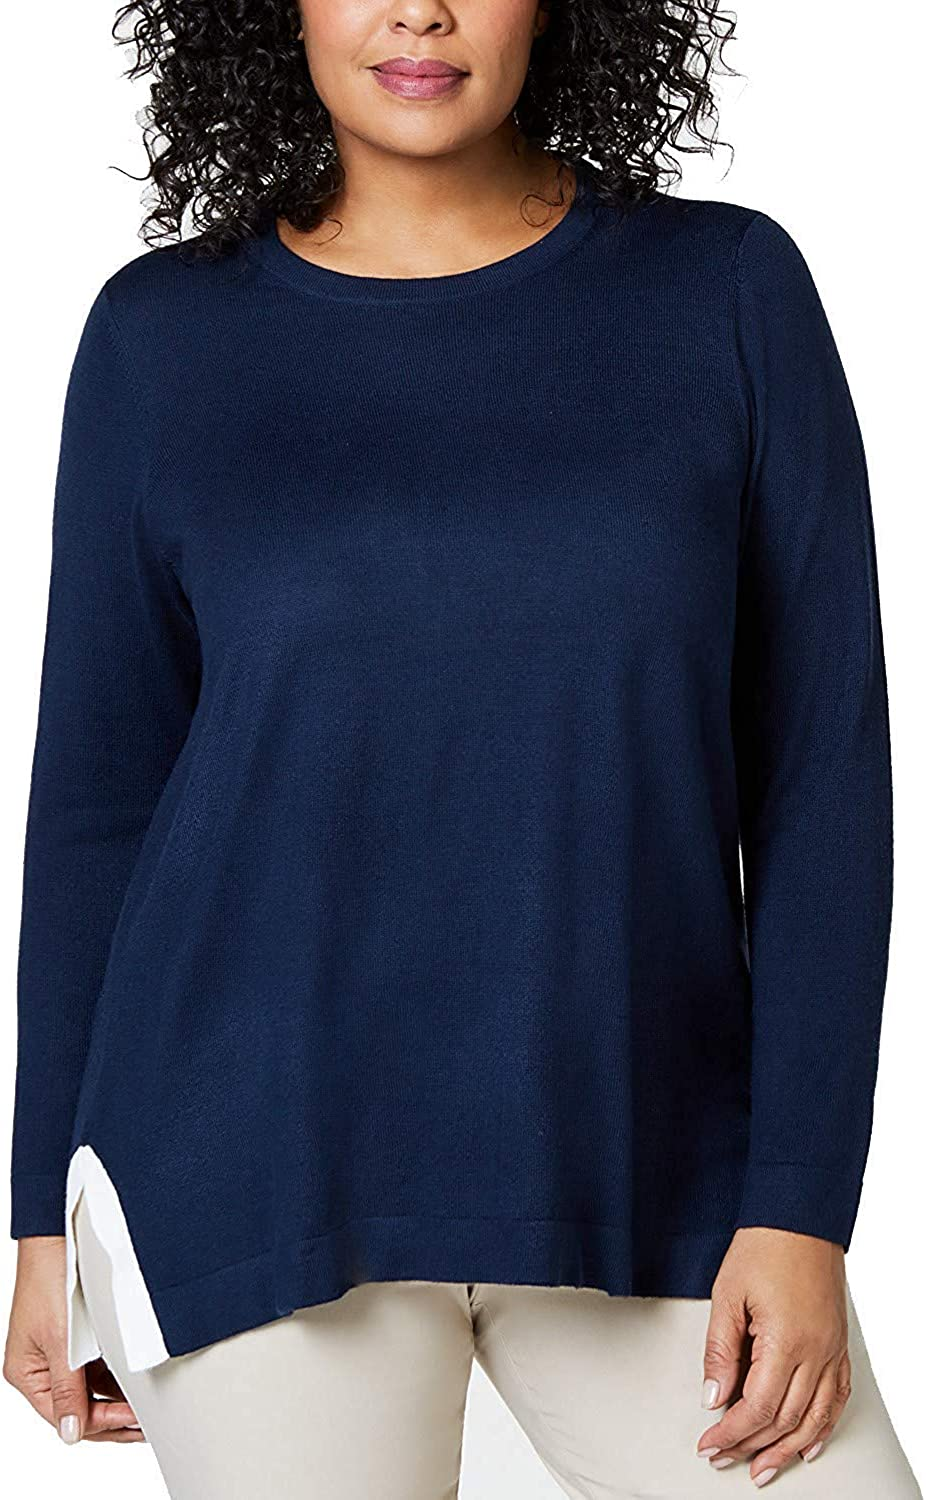 Charter Club Women's Plus Size Contrast Trim Long Sleeve Pullover Sweater